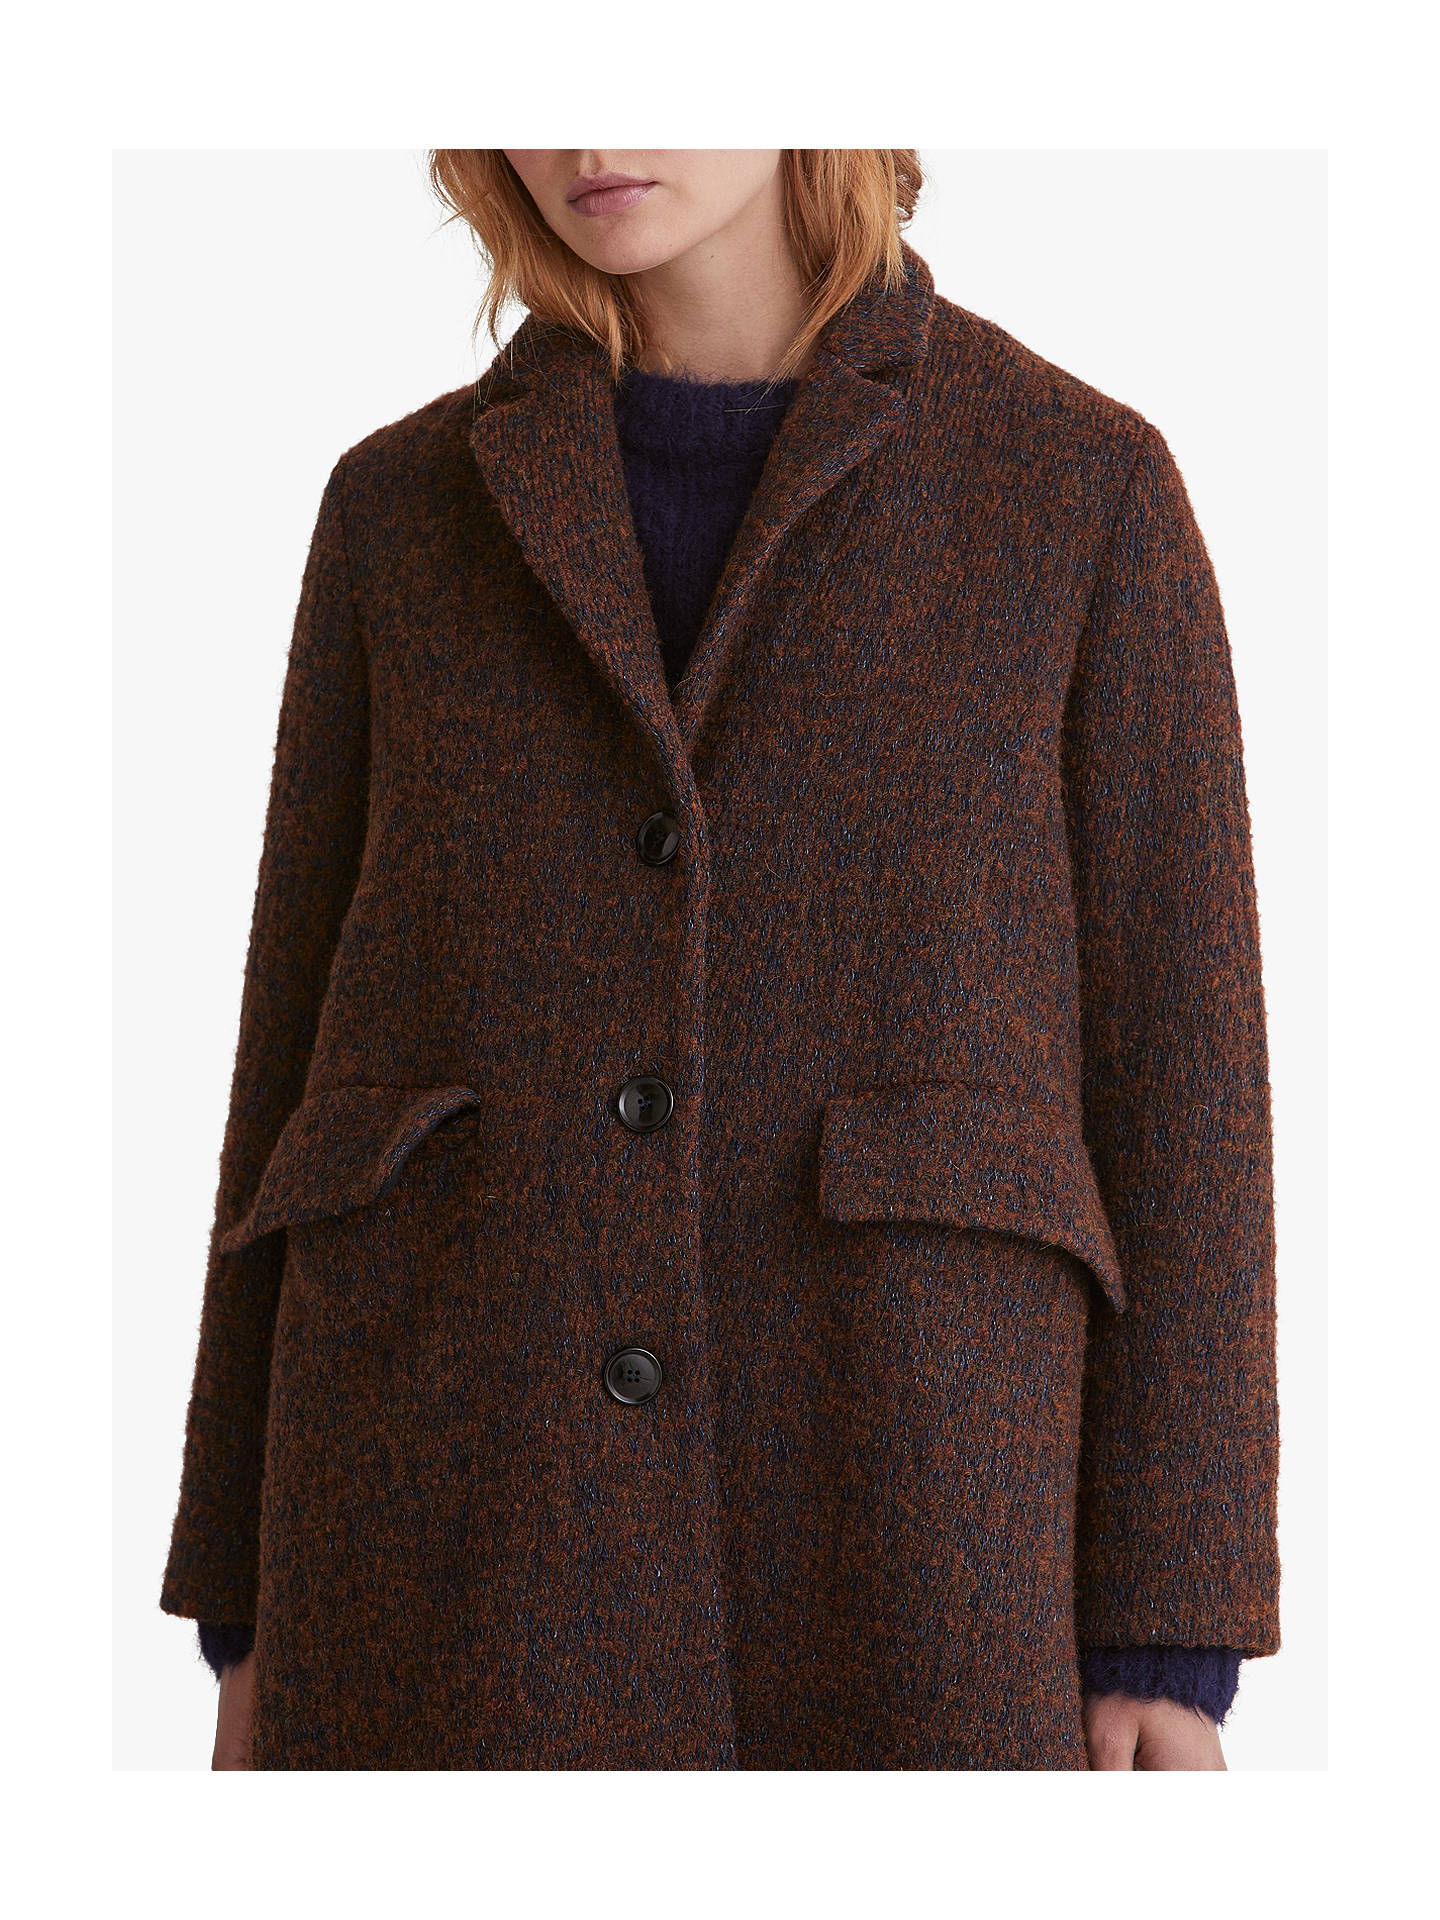 BuyToast Wool Twill Coat, Chestnut, 8 Online at johnlewis.com